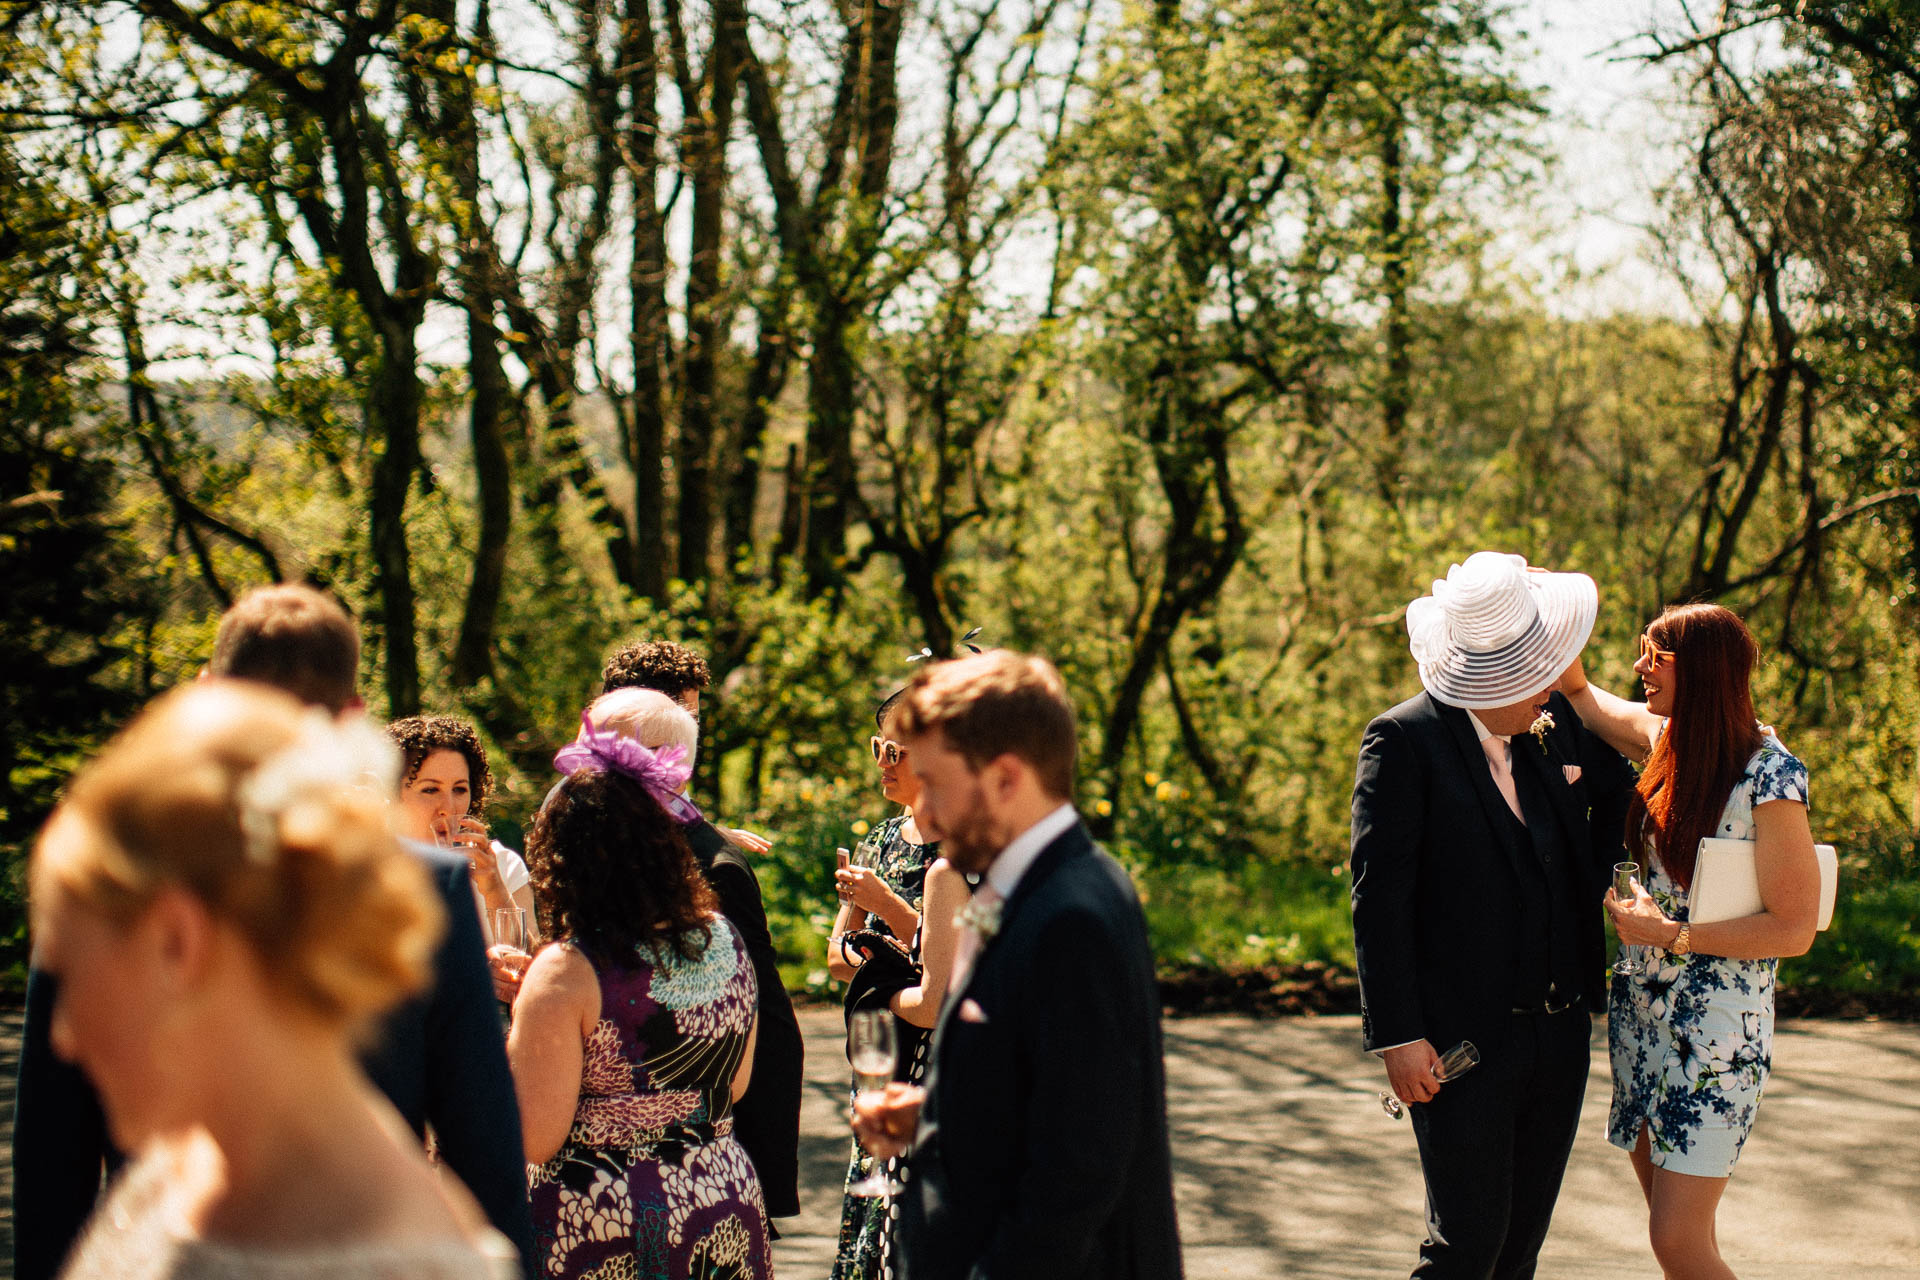 The Wild Boar Wedding Photography - EM - guests chatting